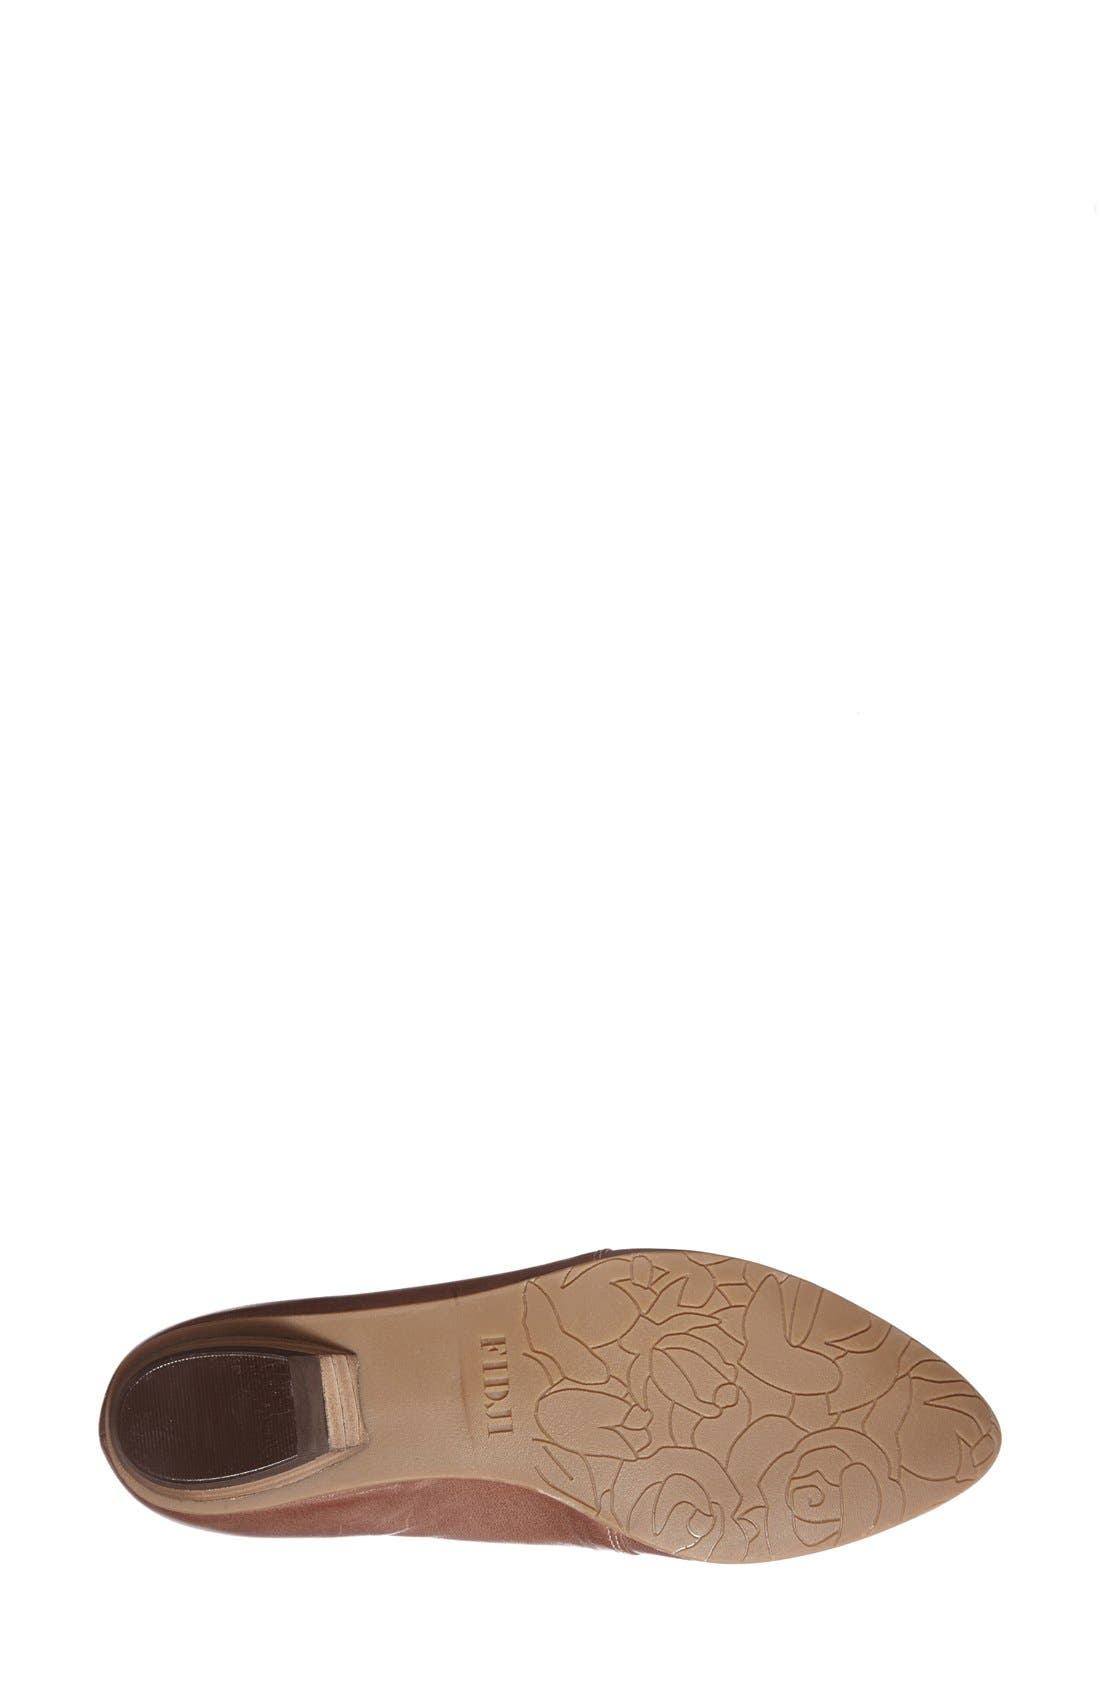 'V103' Leather Flat,                             Alternate thumbnail 4, color,                             BROWN